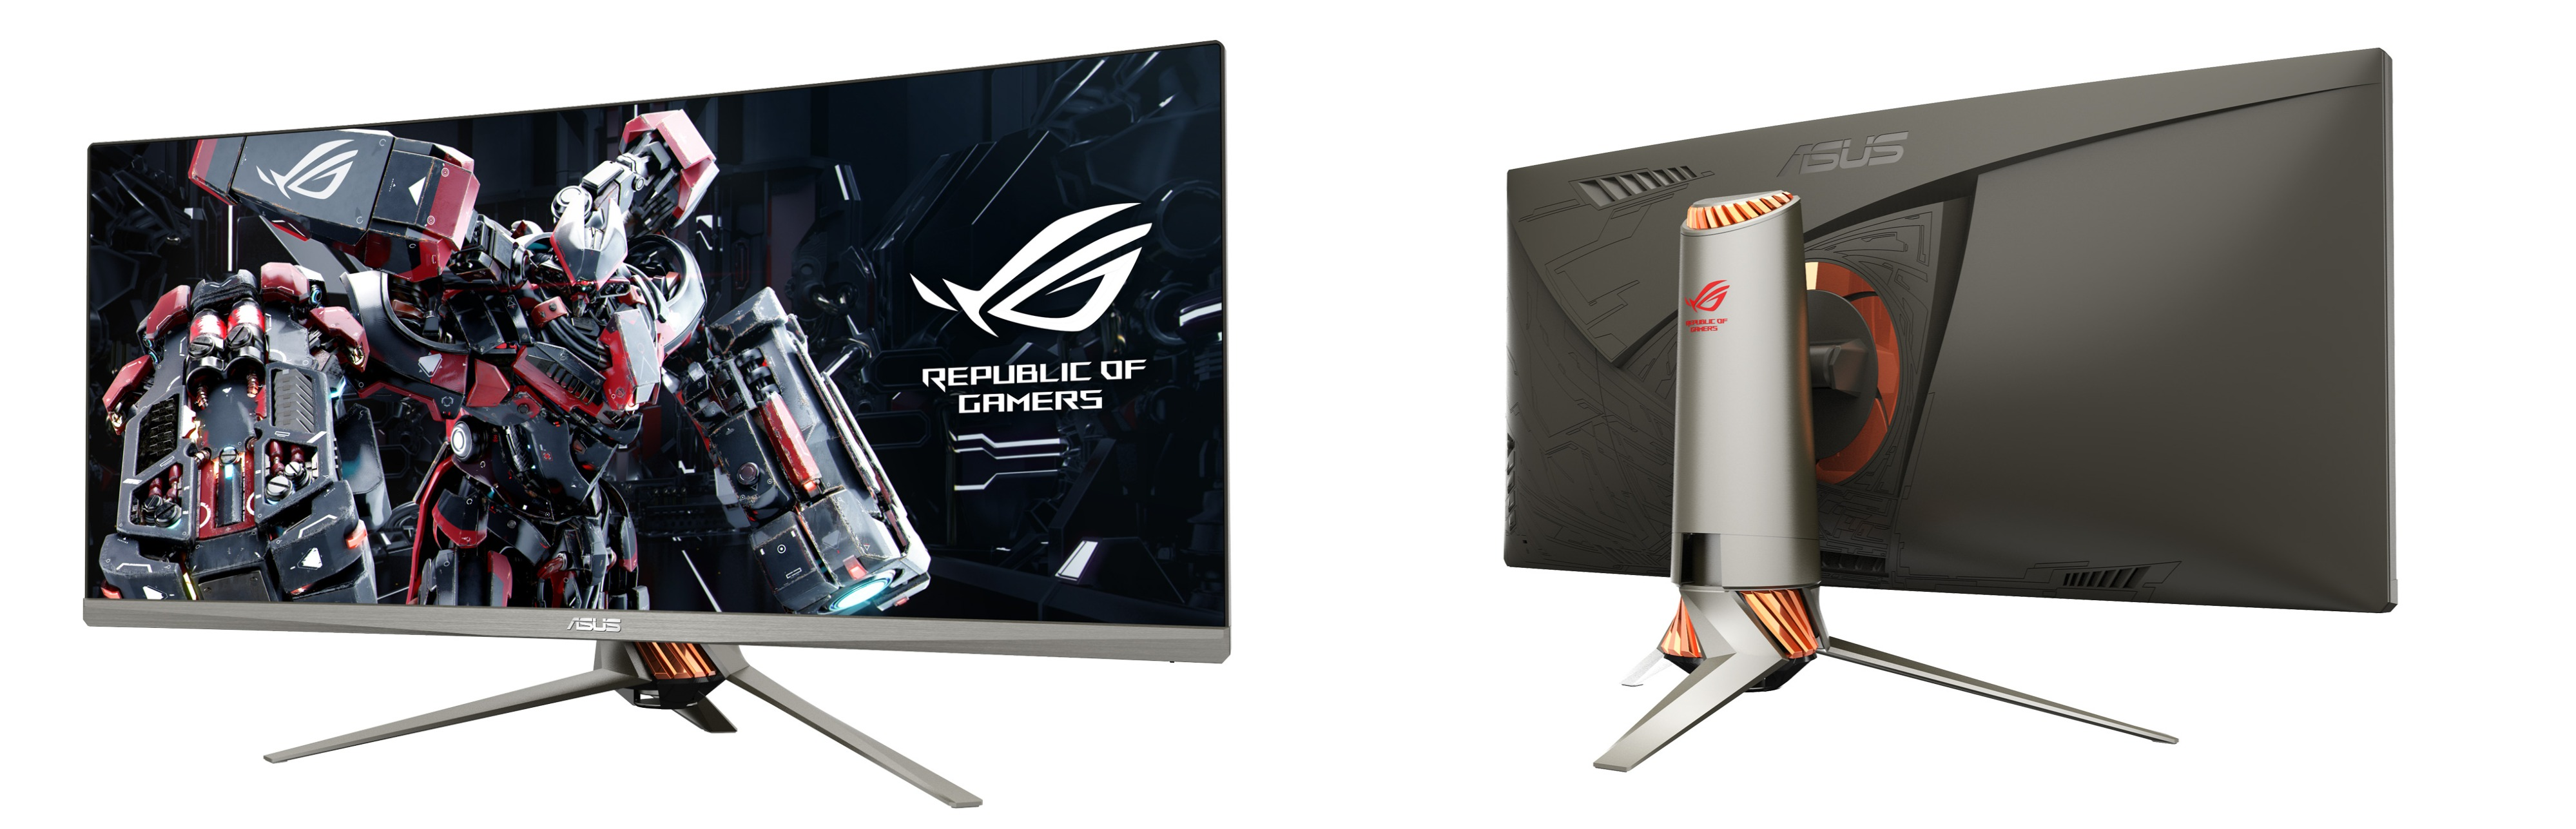 ASUS ROG Swift PG348Q Review: Don't BUY Before Reading This!